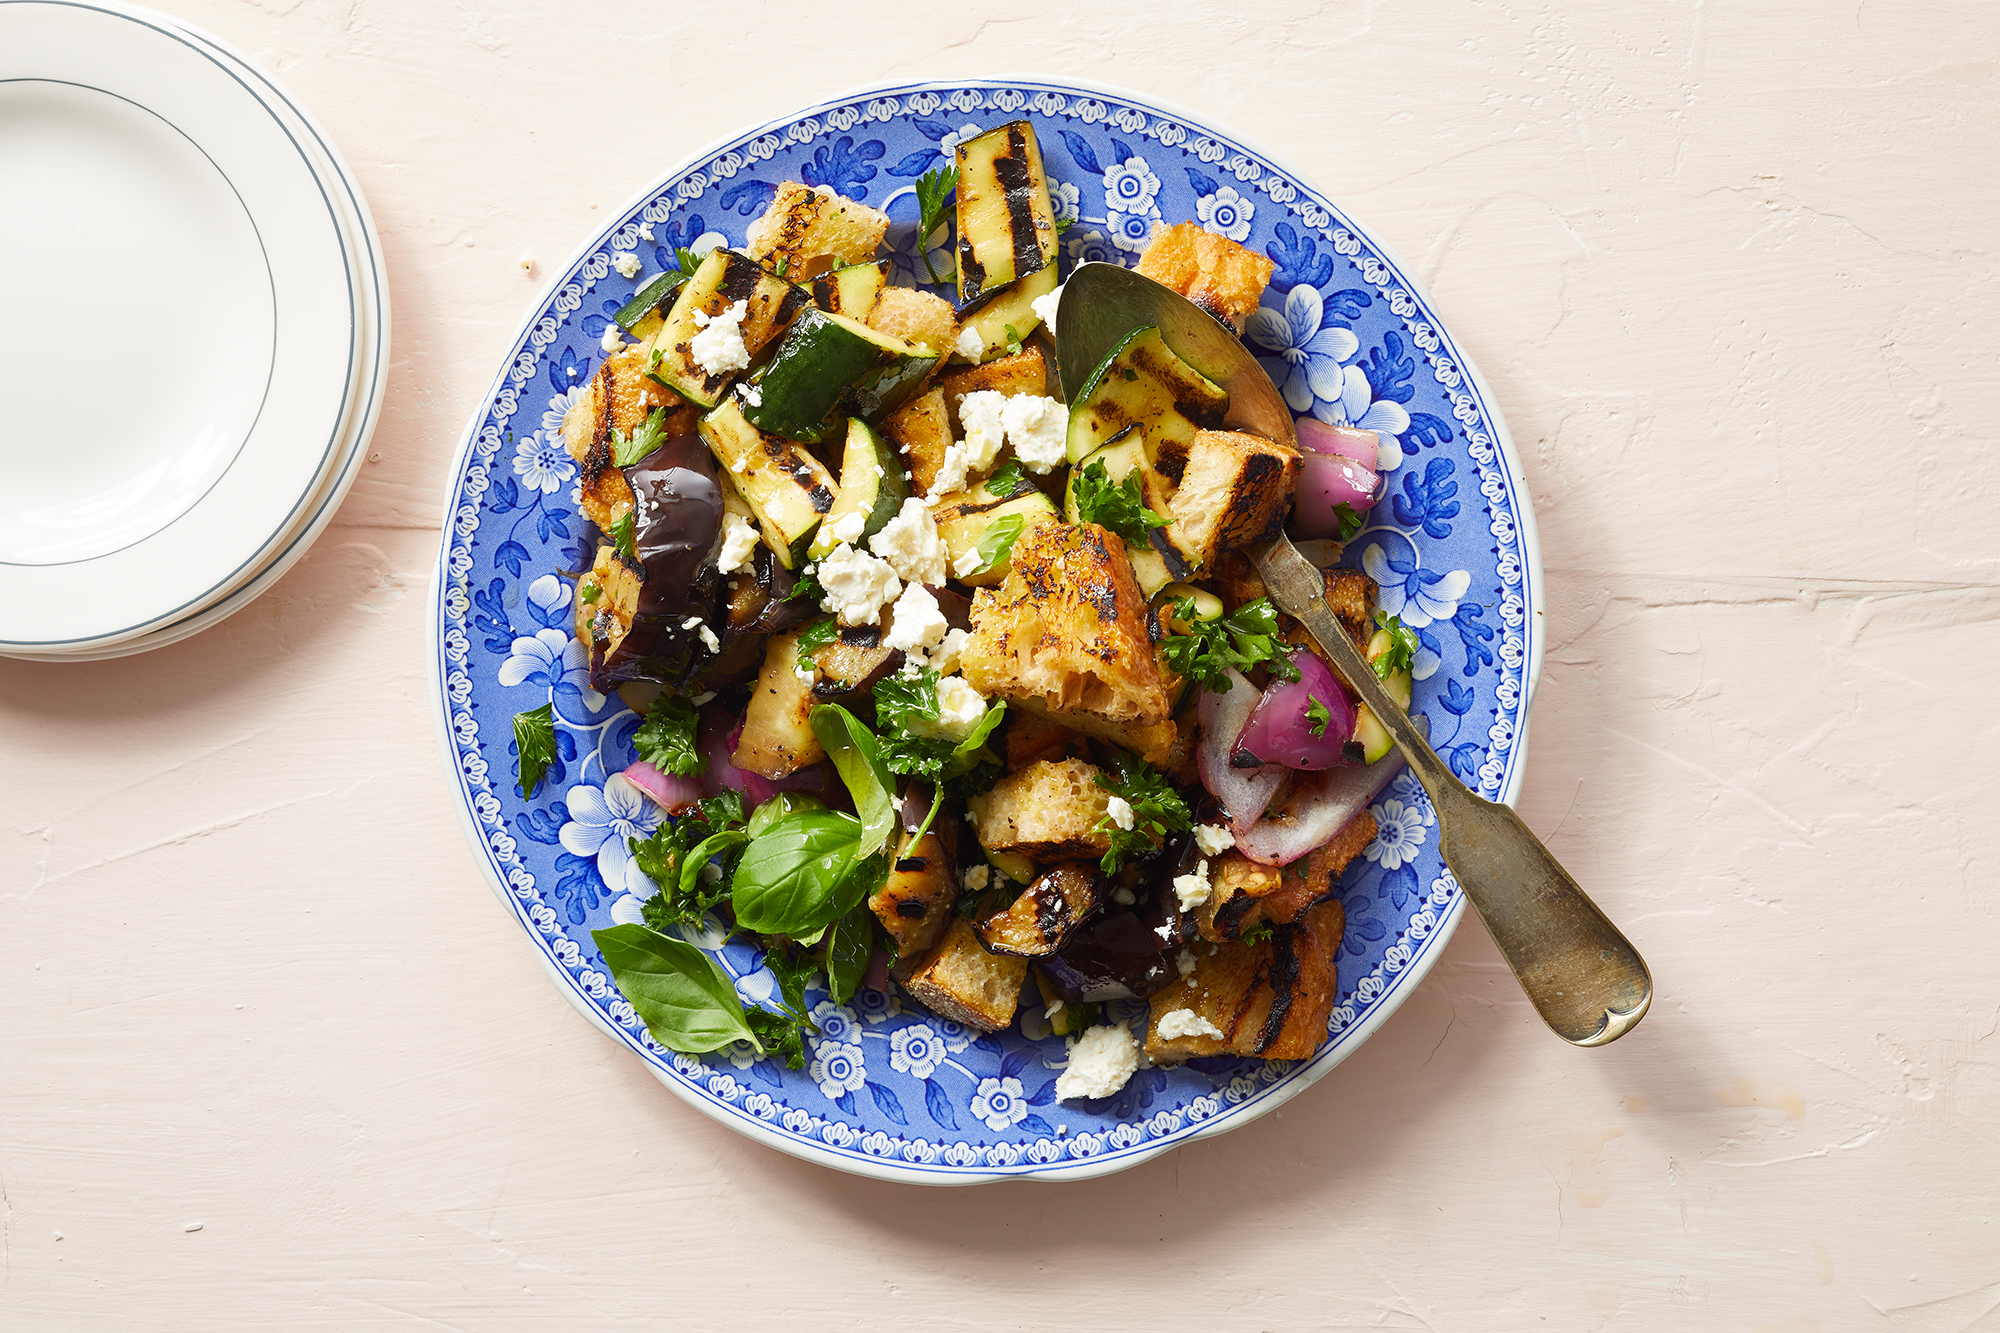 Grilled Summer Vegetable Panzanella with Feta